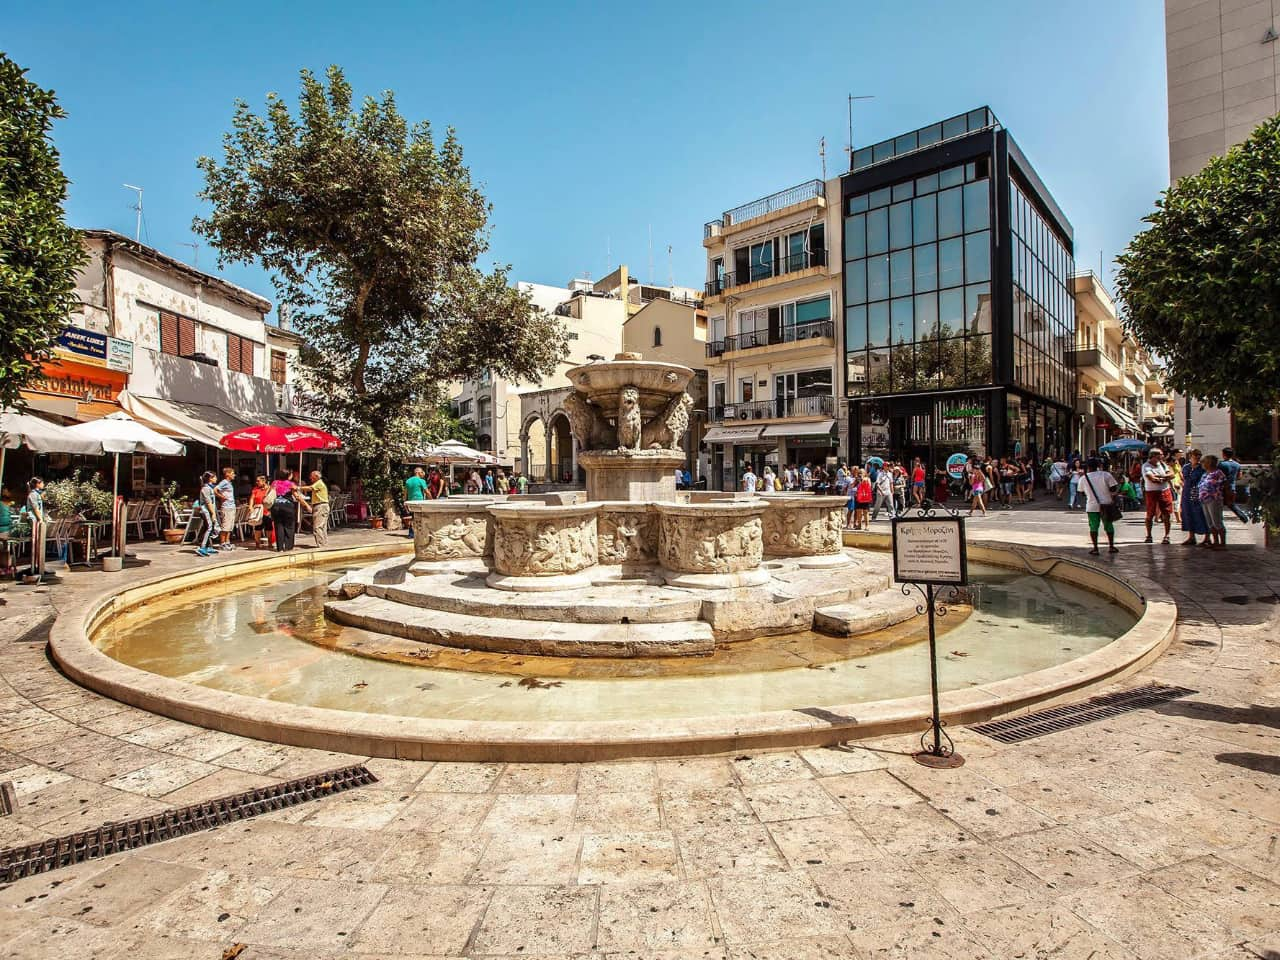 Historical Family Excursion In The City Of Heraklion, historical walk city tour heraklion, iraklion crete city walk tour, family activity heraklion crete, best city tour heraklion, things to do heraklion crete